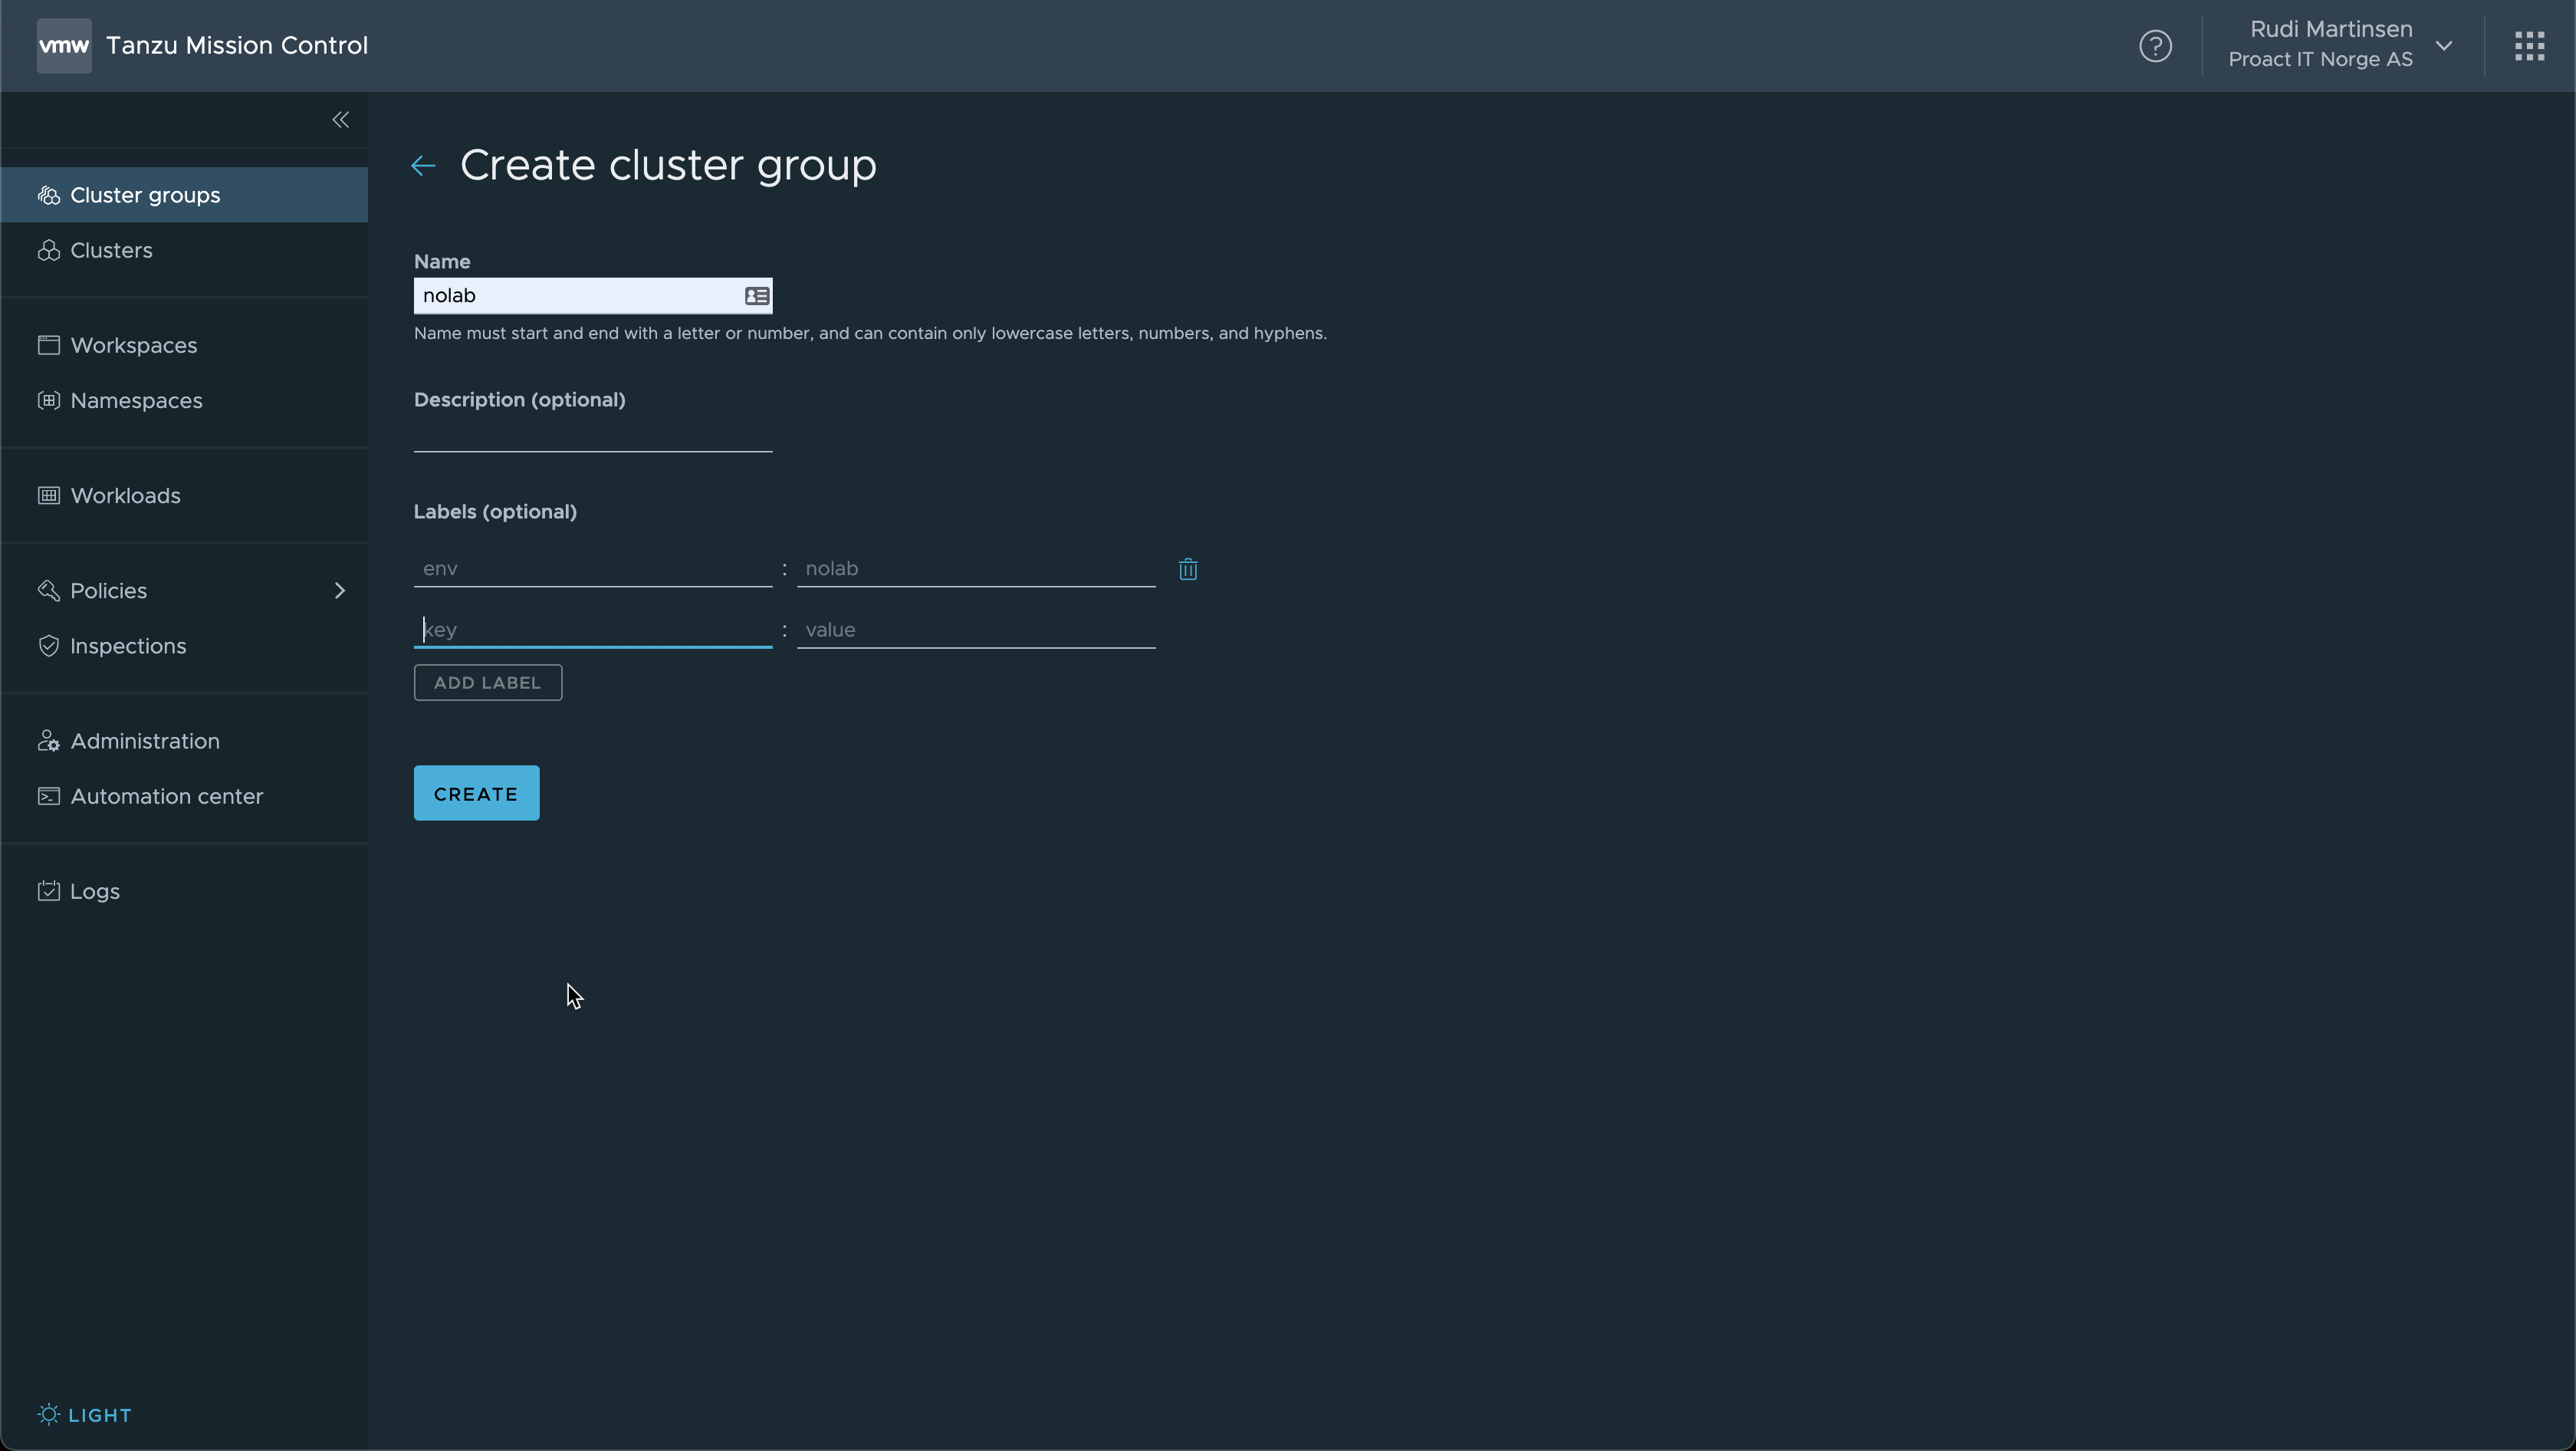 Create cluster group